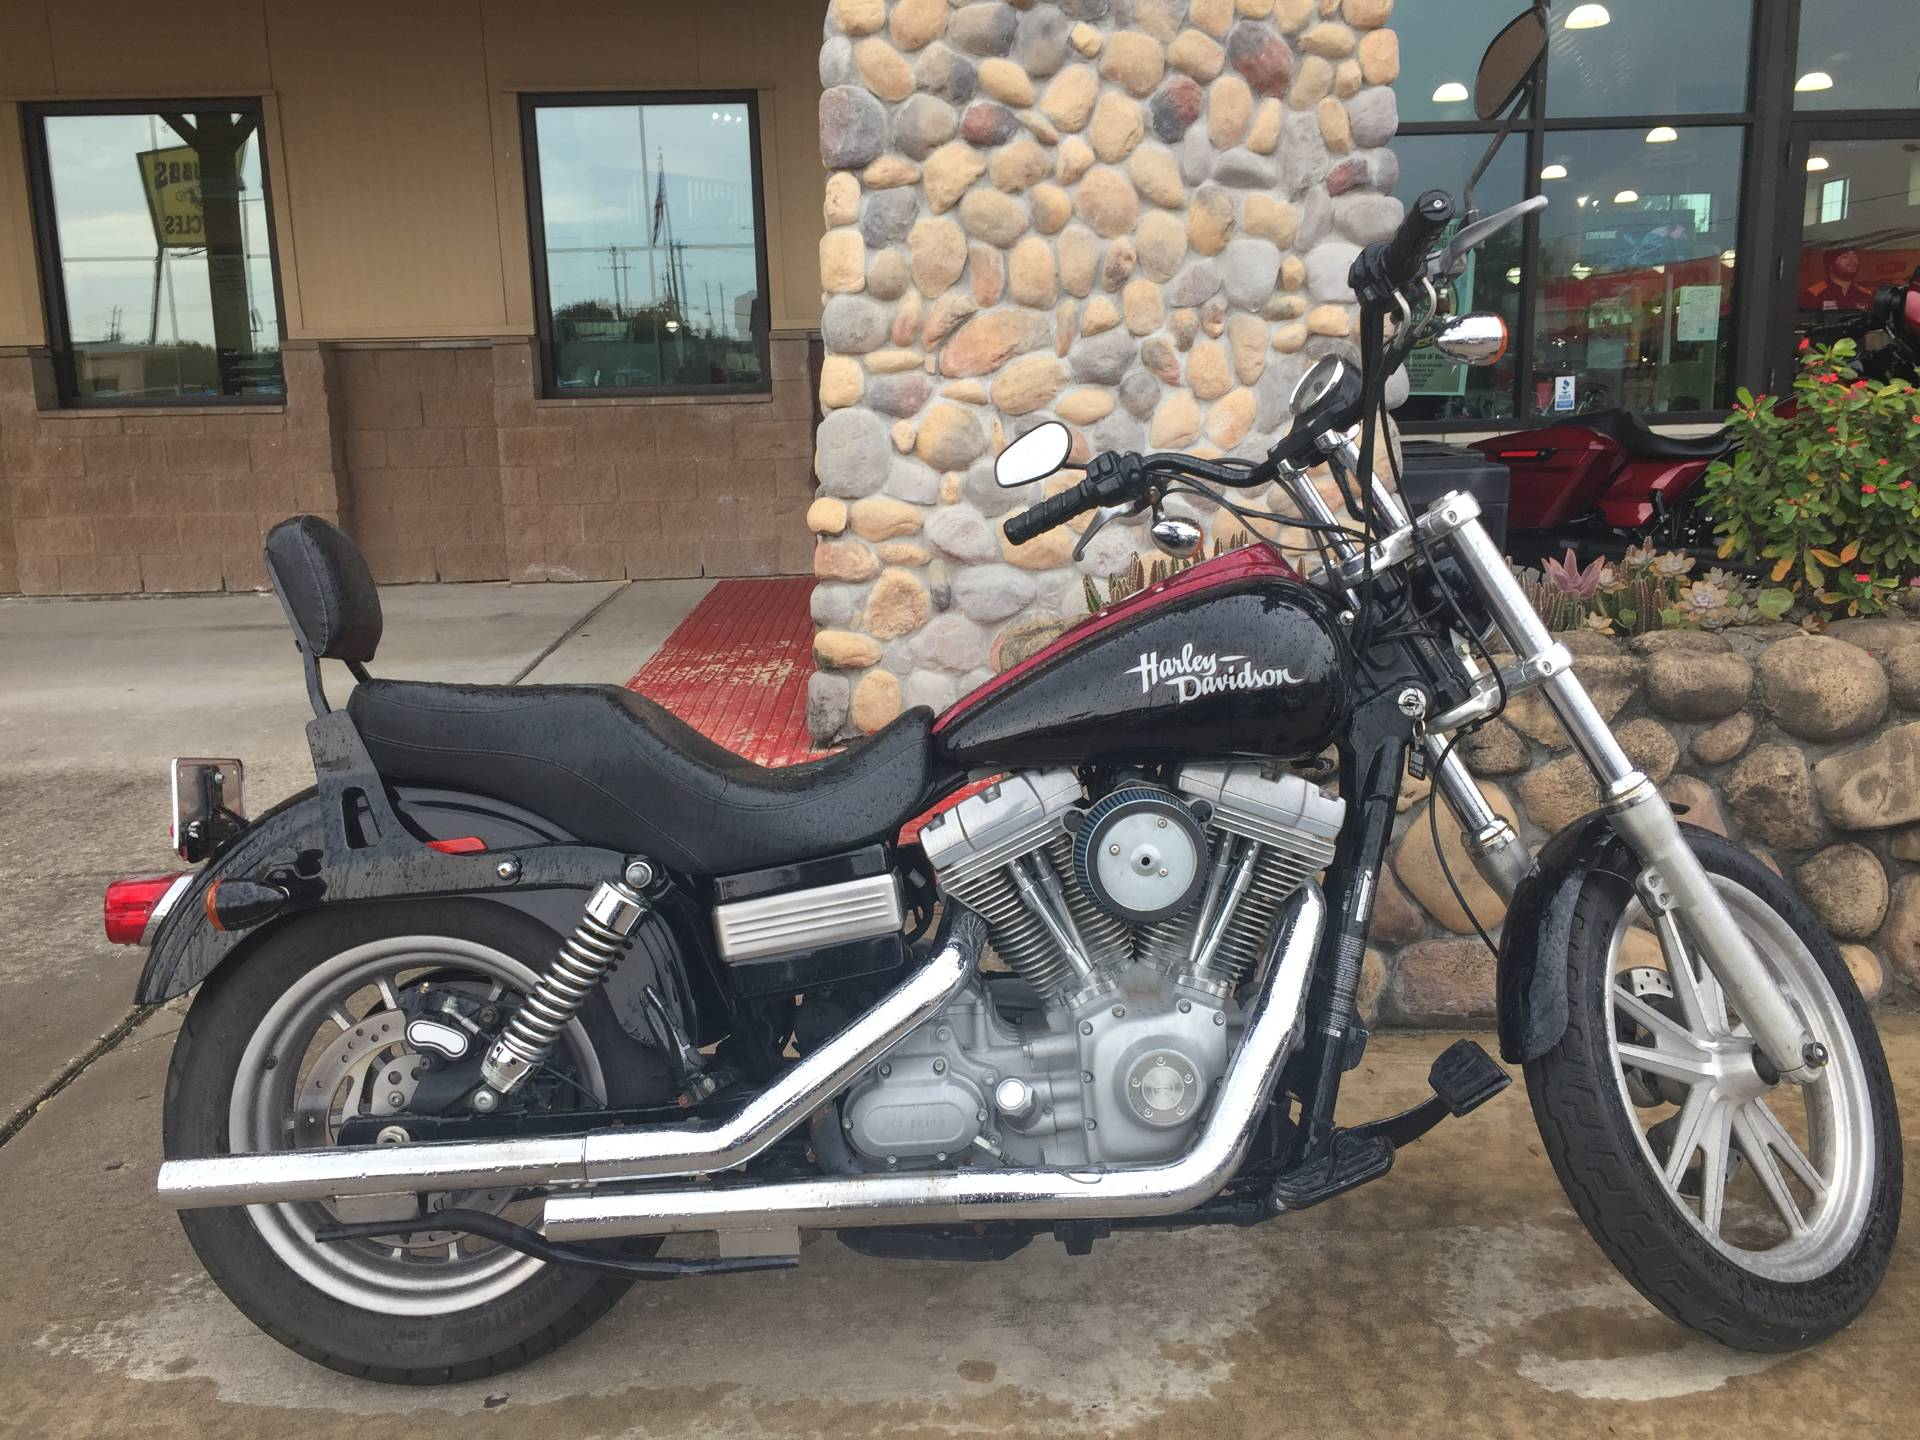 2009 Harley-Davidson DYNA SUPERGLIDE in Houston, Texas